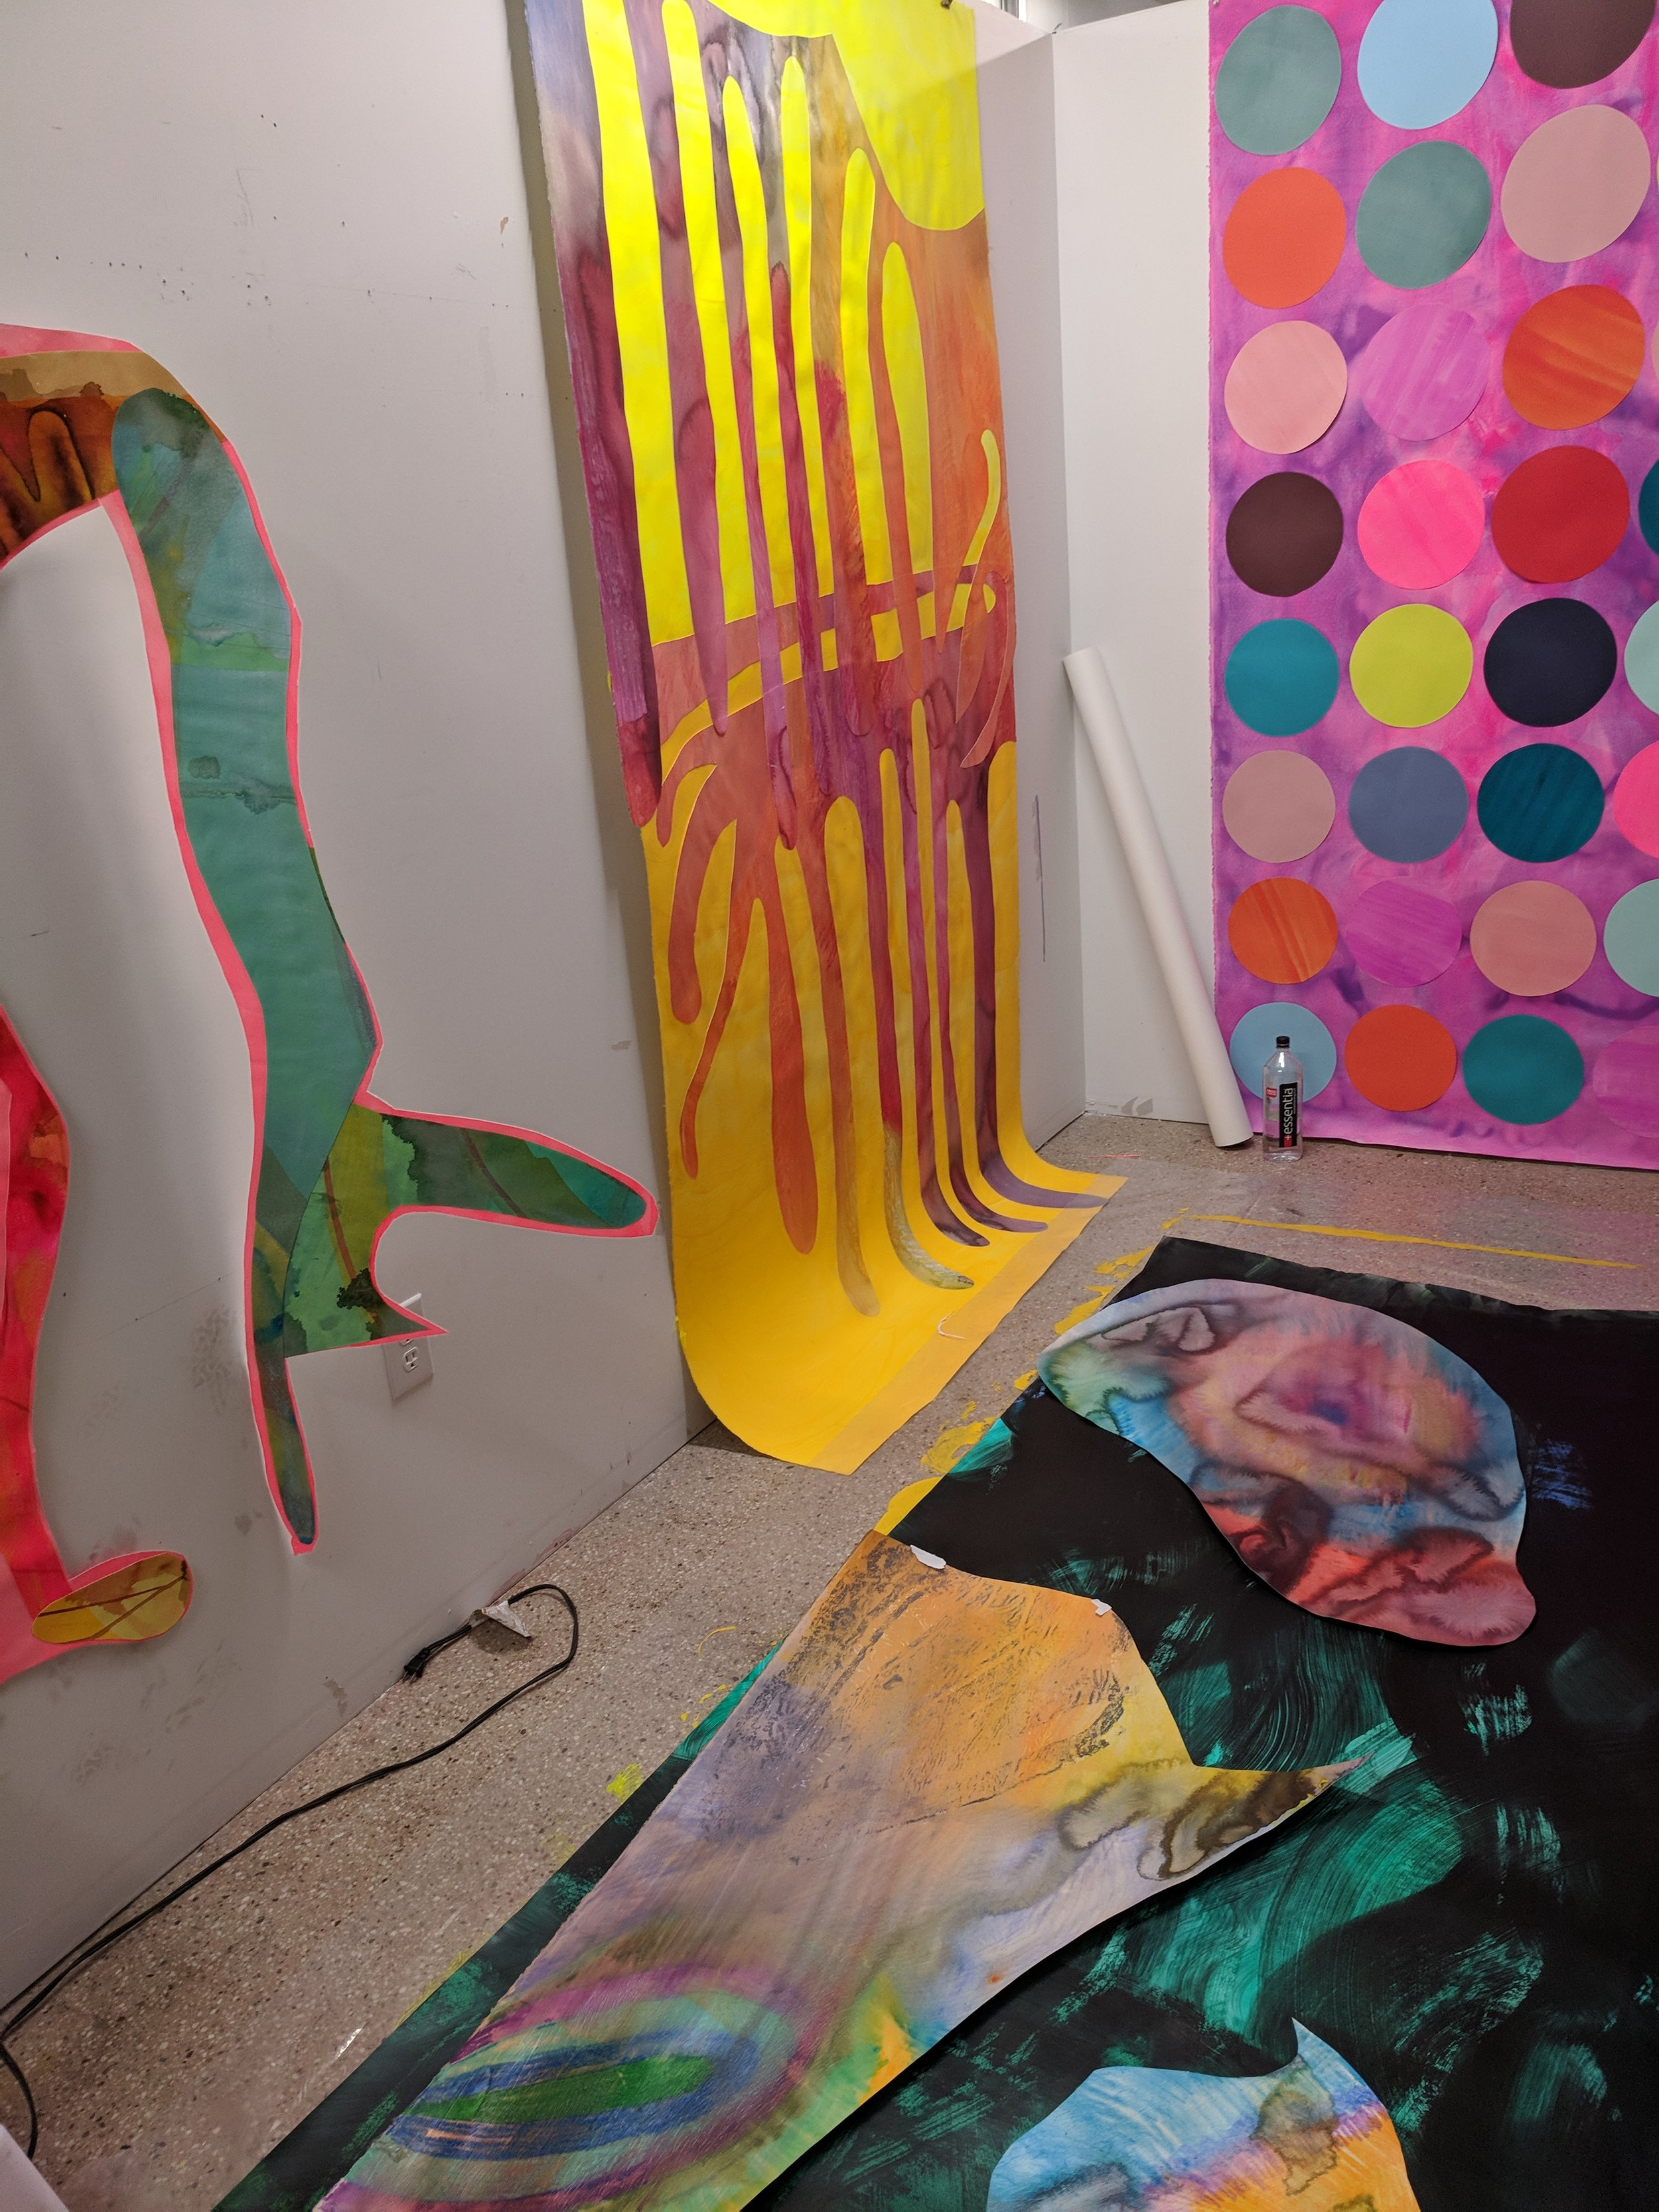 Come and visit 850 Third Ave in Brooklyn, NYC Suite 411 to visit my Open Studio on June 9 & 10th from 12 - 6PM.